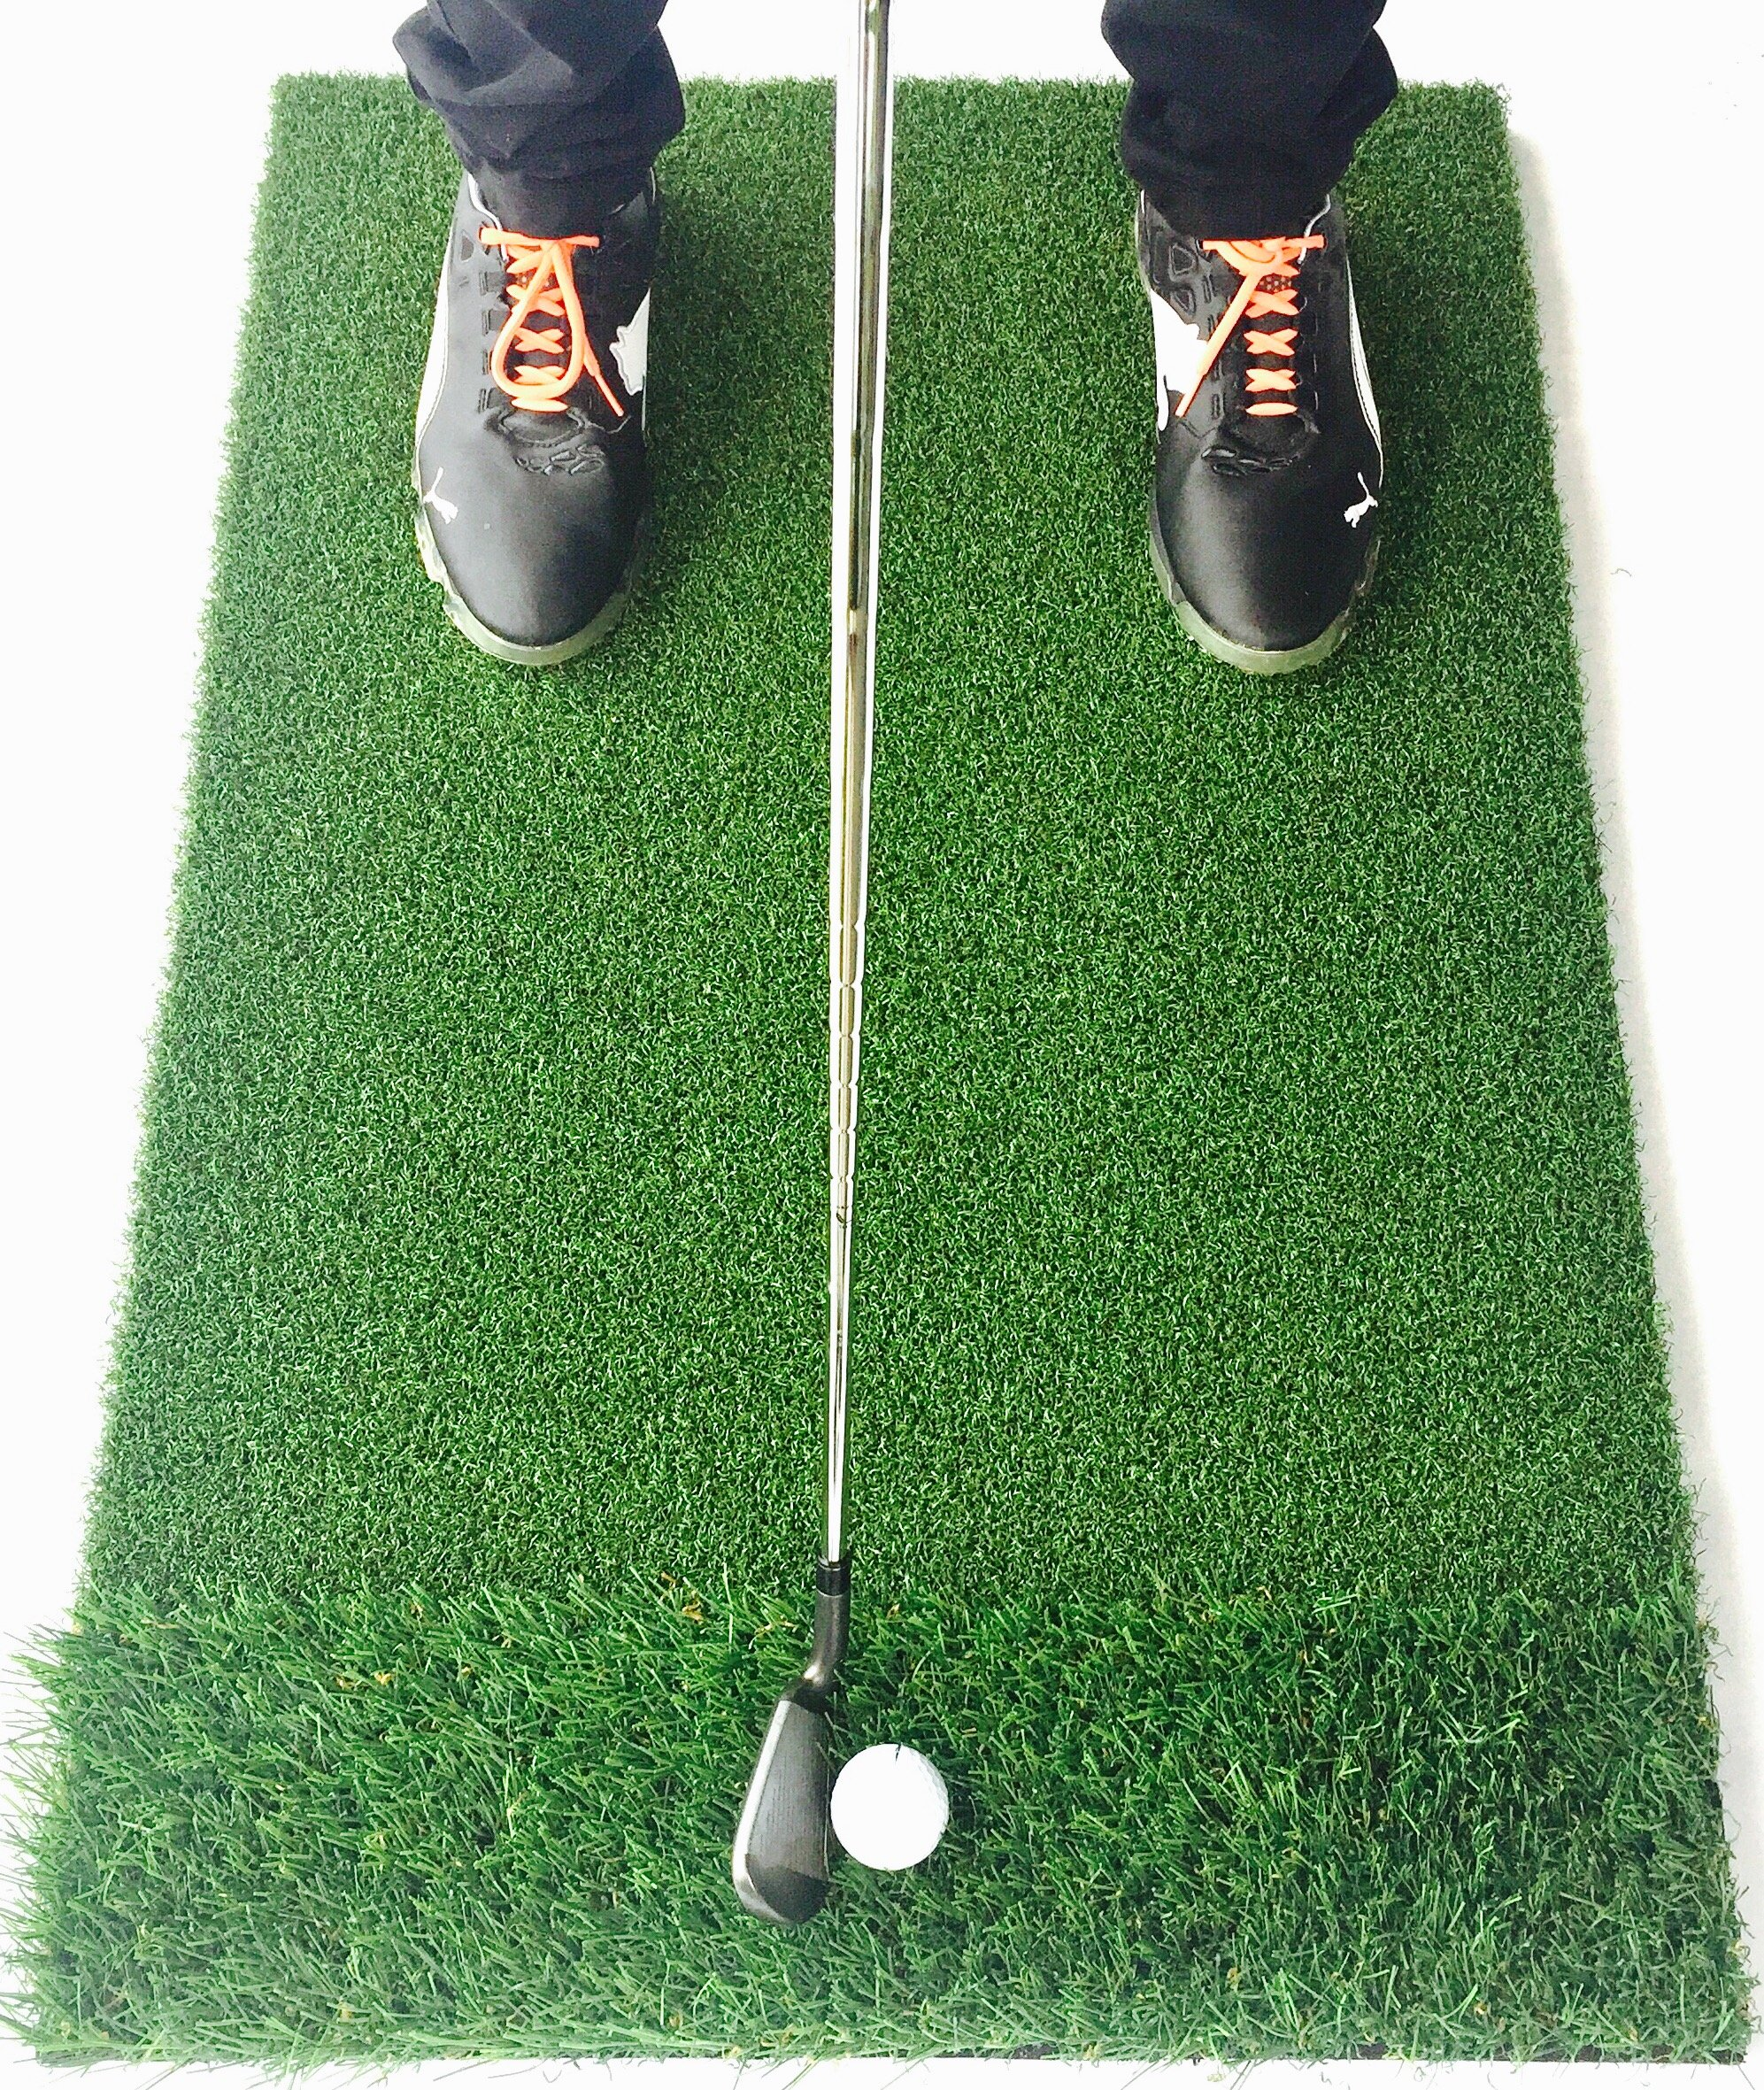 StrikeDown Dual-Turf PRO Golf Hitting Mat | Fairway/Rough Grass, Shockpad, Practice Indoors/Outdoors (36in x 24in) by Motivo Golf